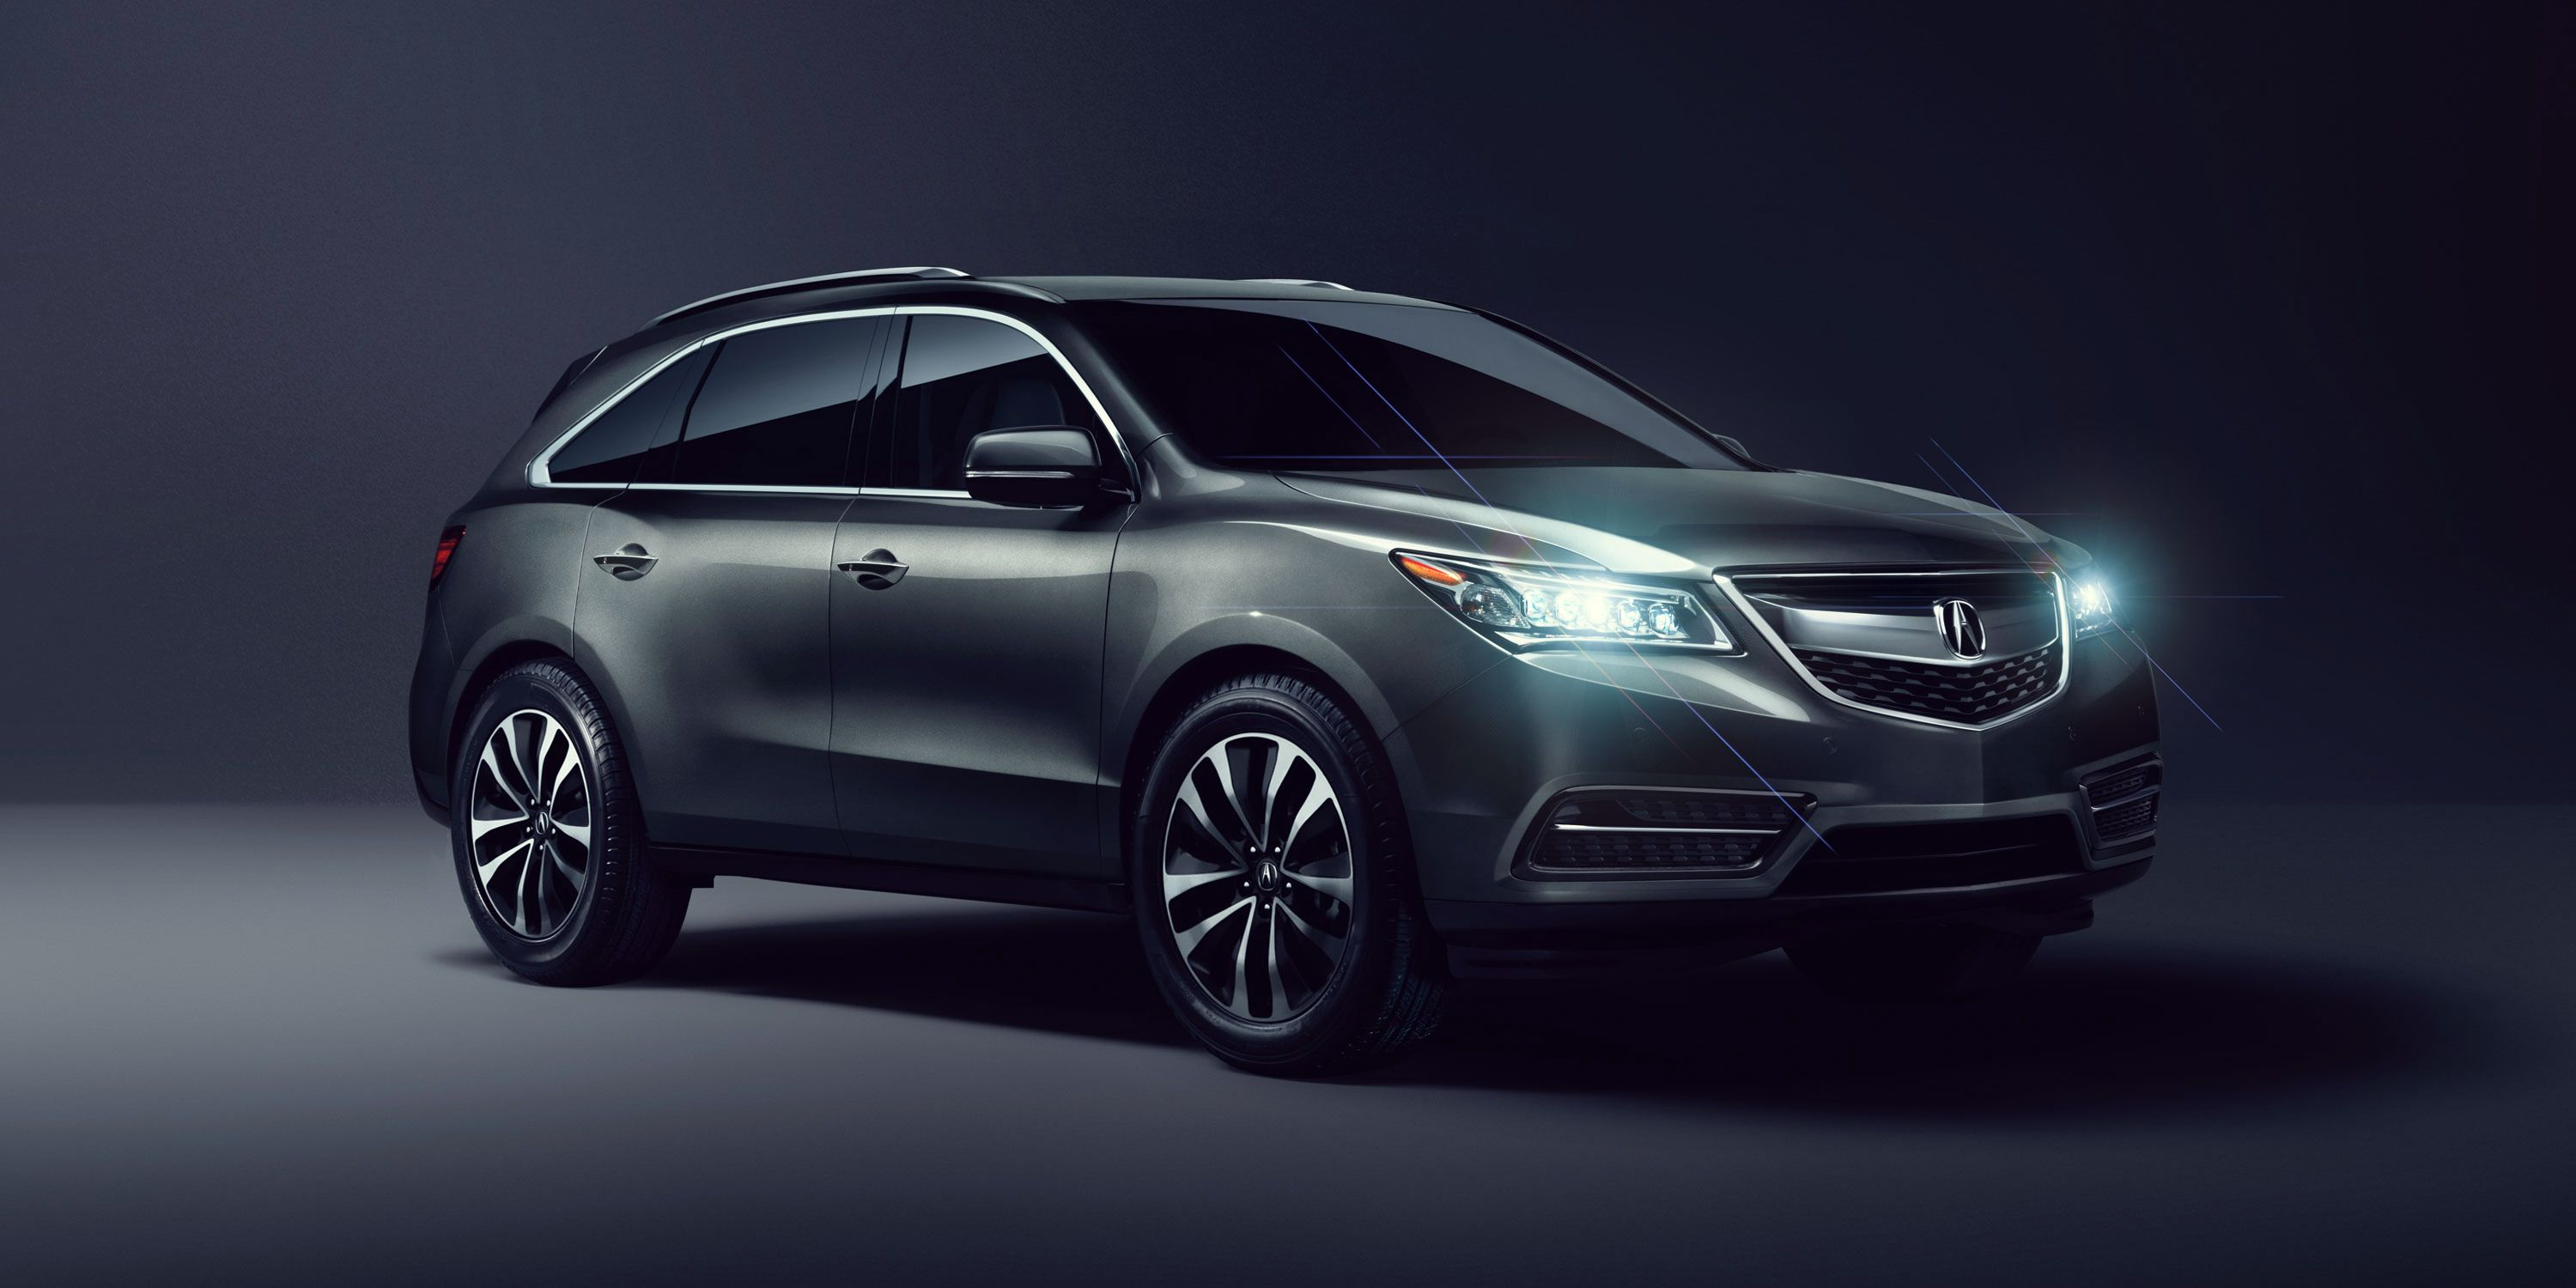 The 2016 Acura Mdx Is Understood Well As Luxury Suv Up Until